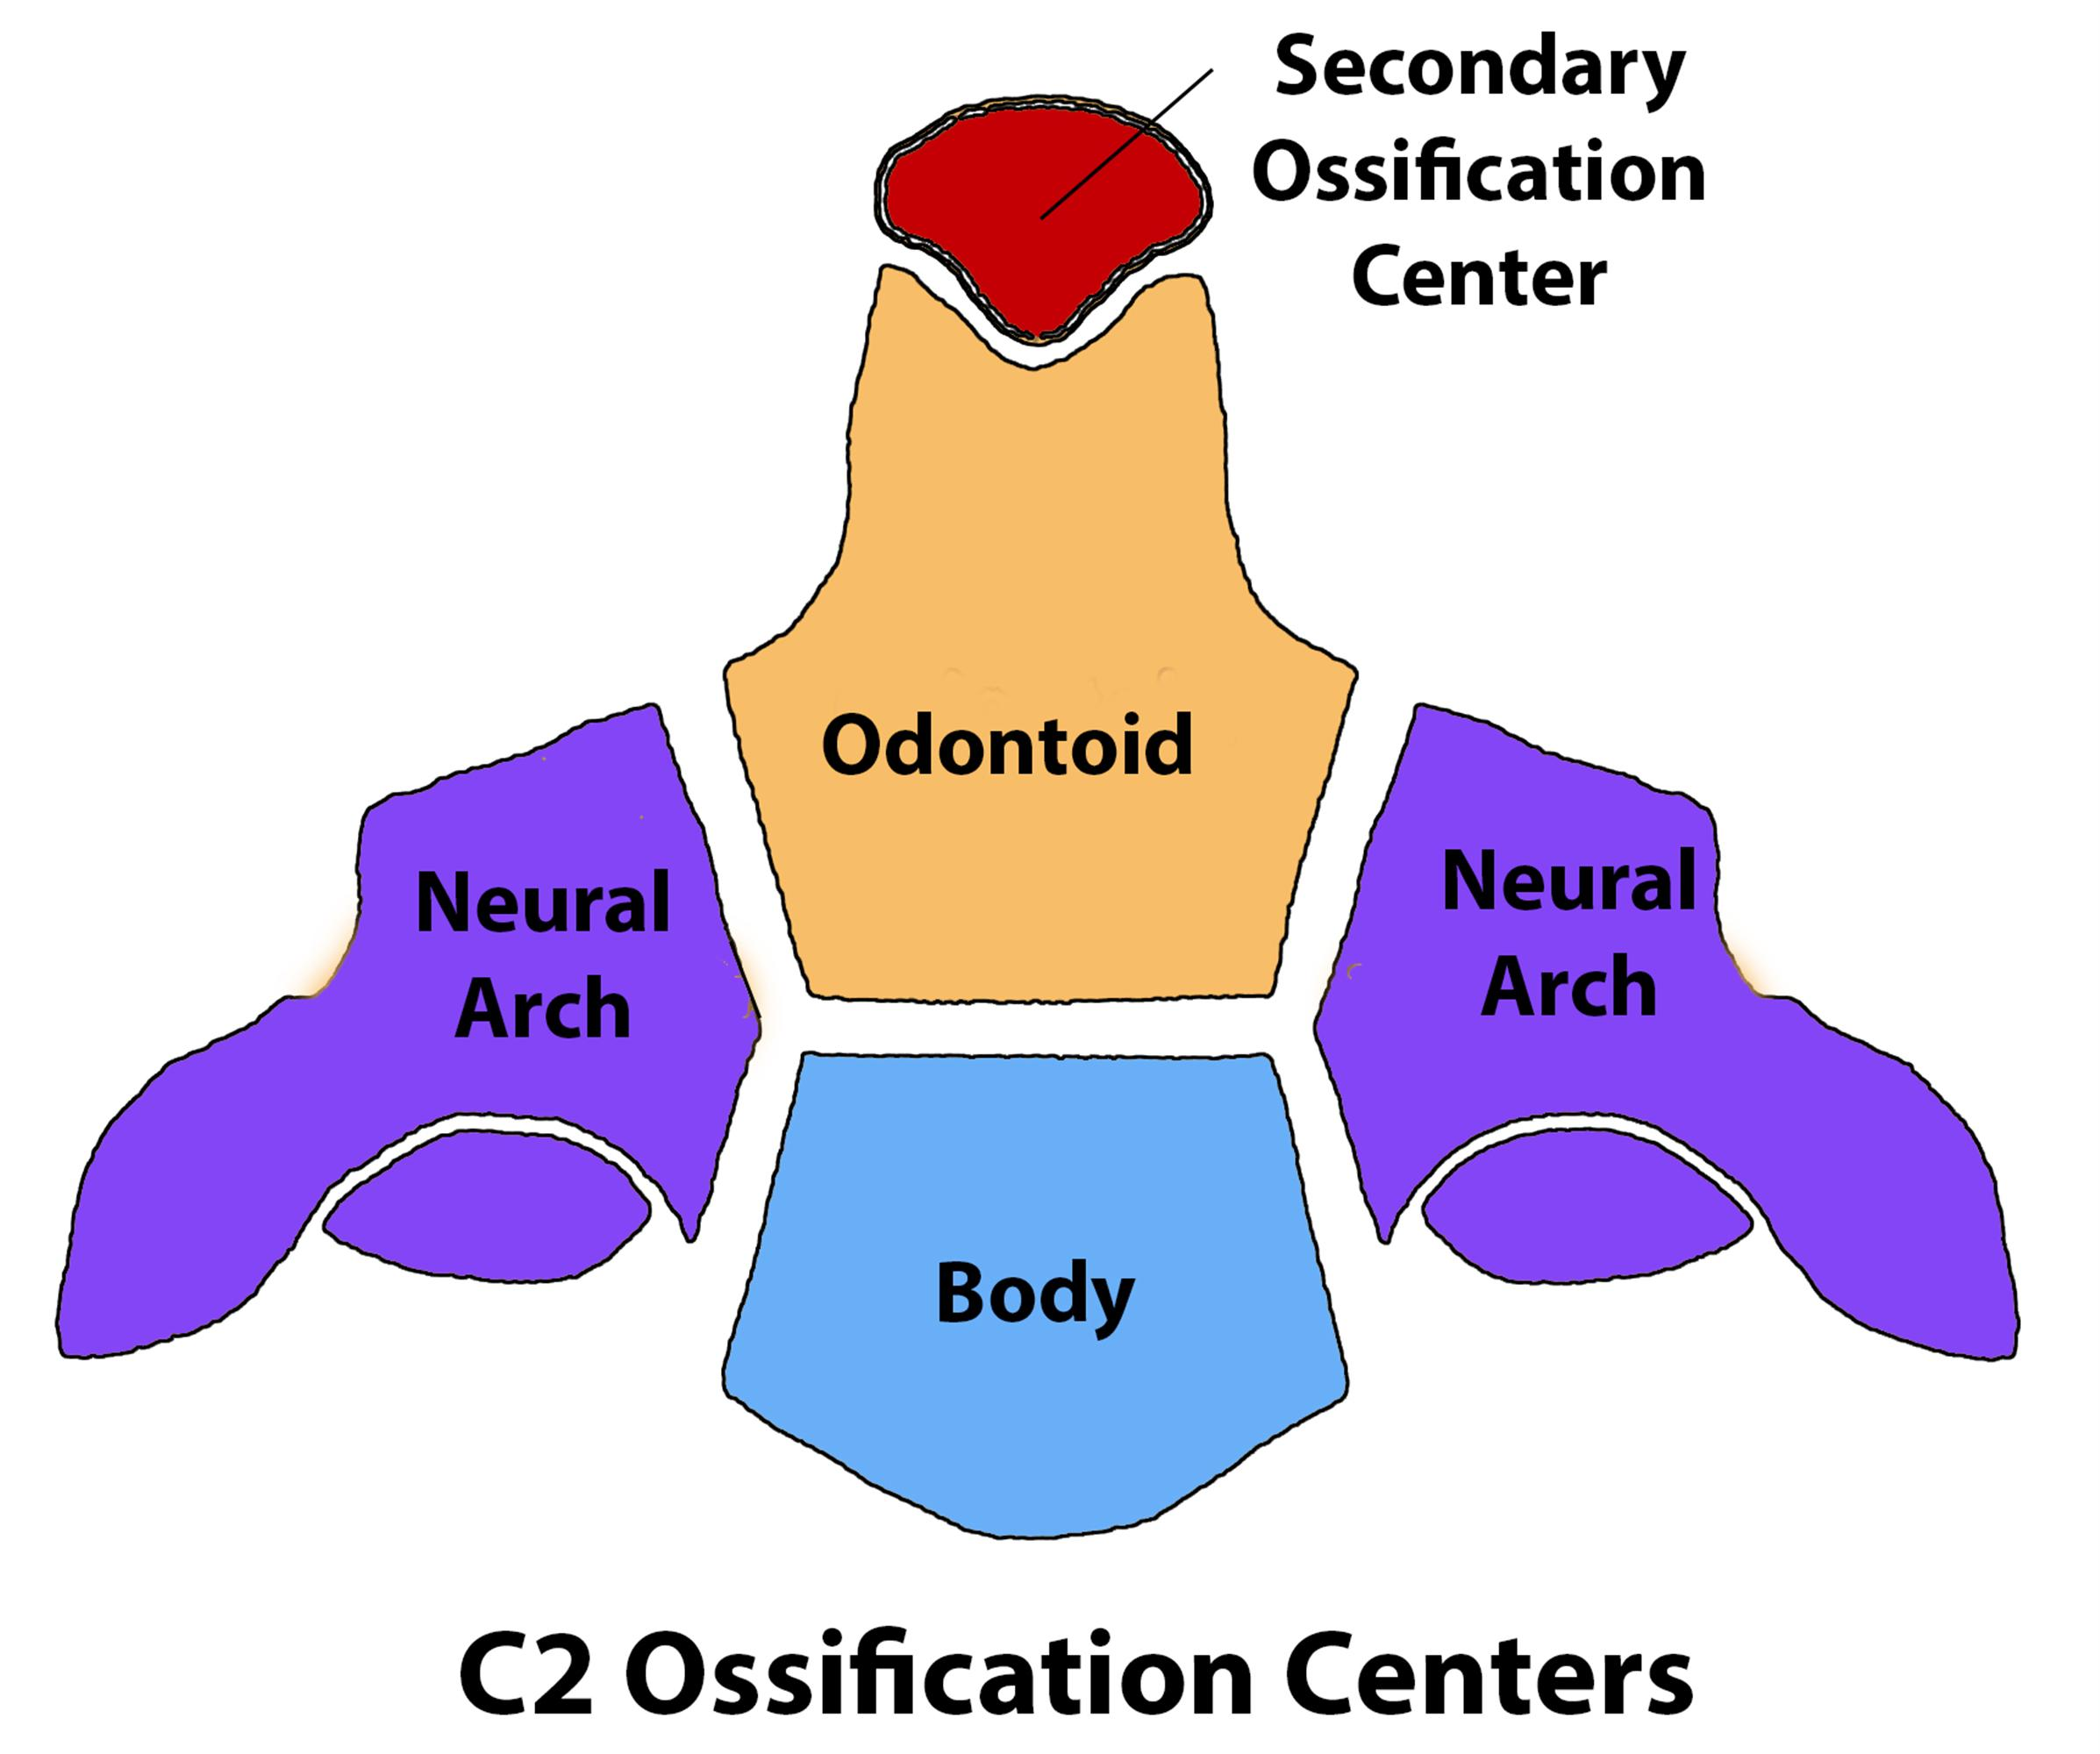 https://upload.orthobullets.com/topic/2016/images/ossification center c2.jpg